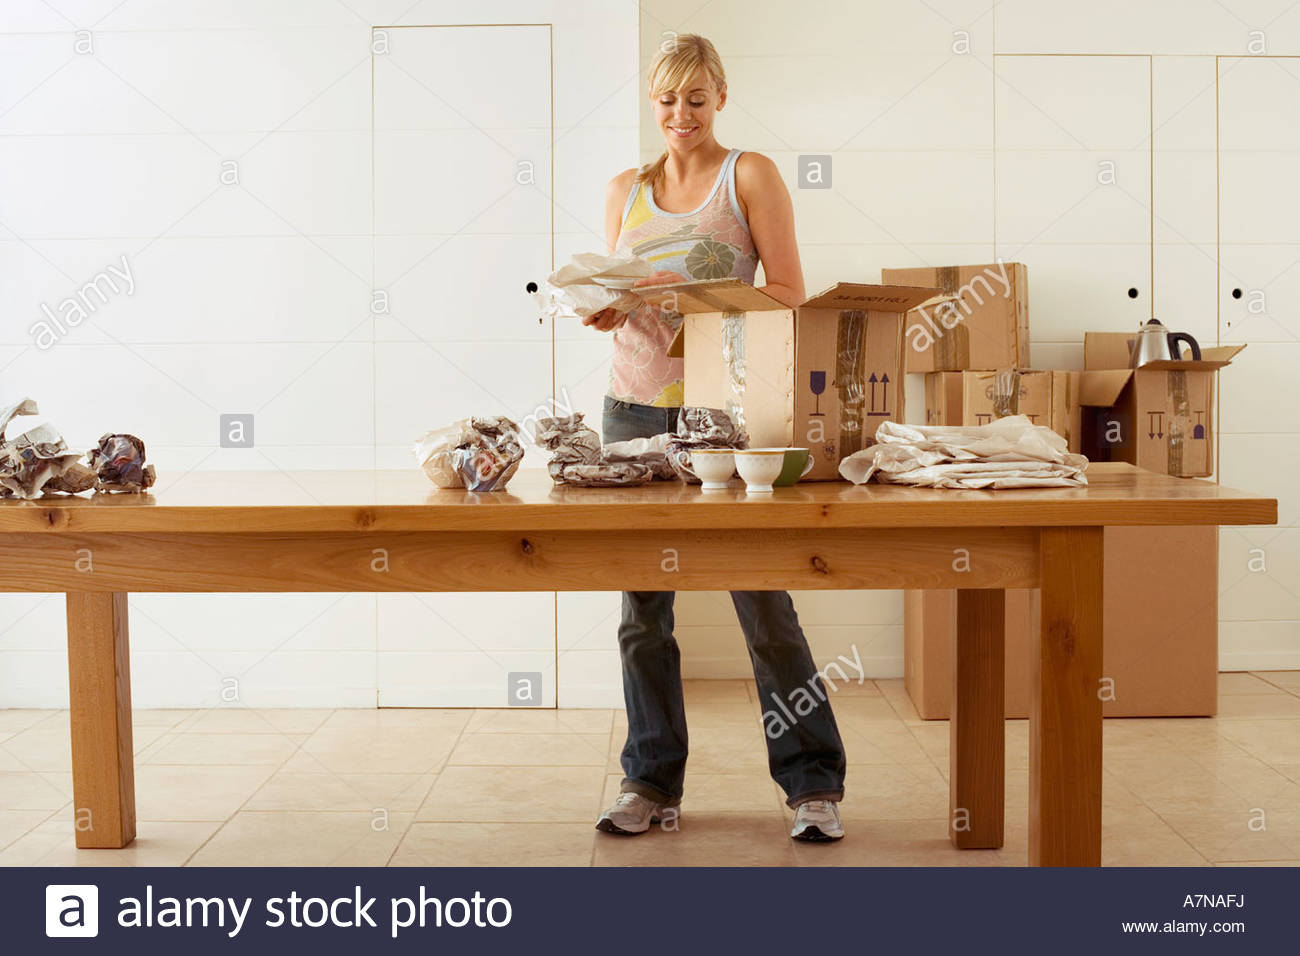 Dining room front view - Stock Photo Woman Moving House Packing Crockery In Cardboard Boxes On Dining Room Table Smiling Front View